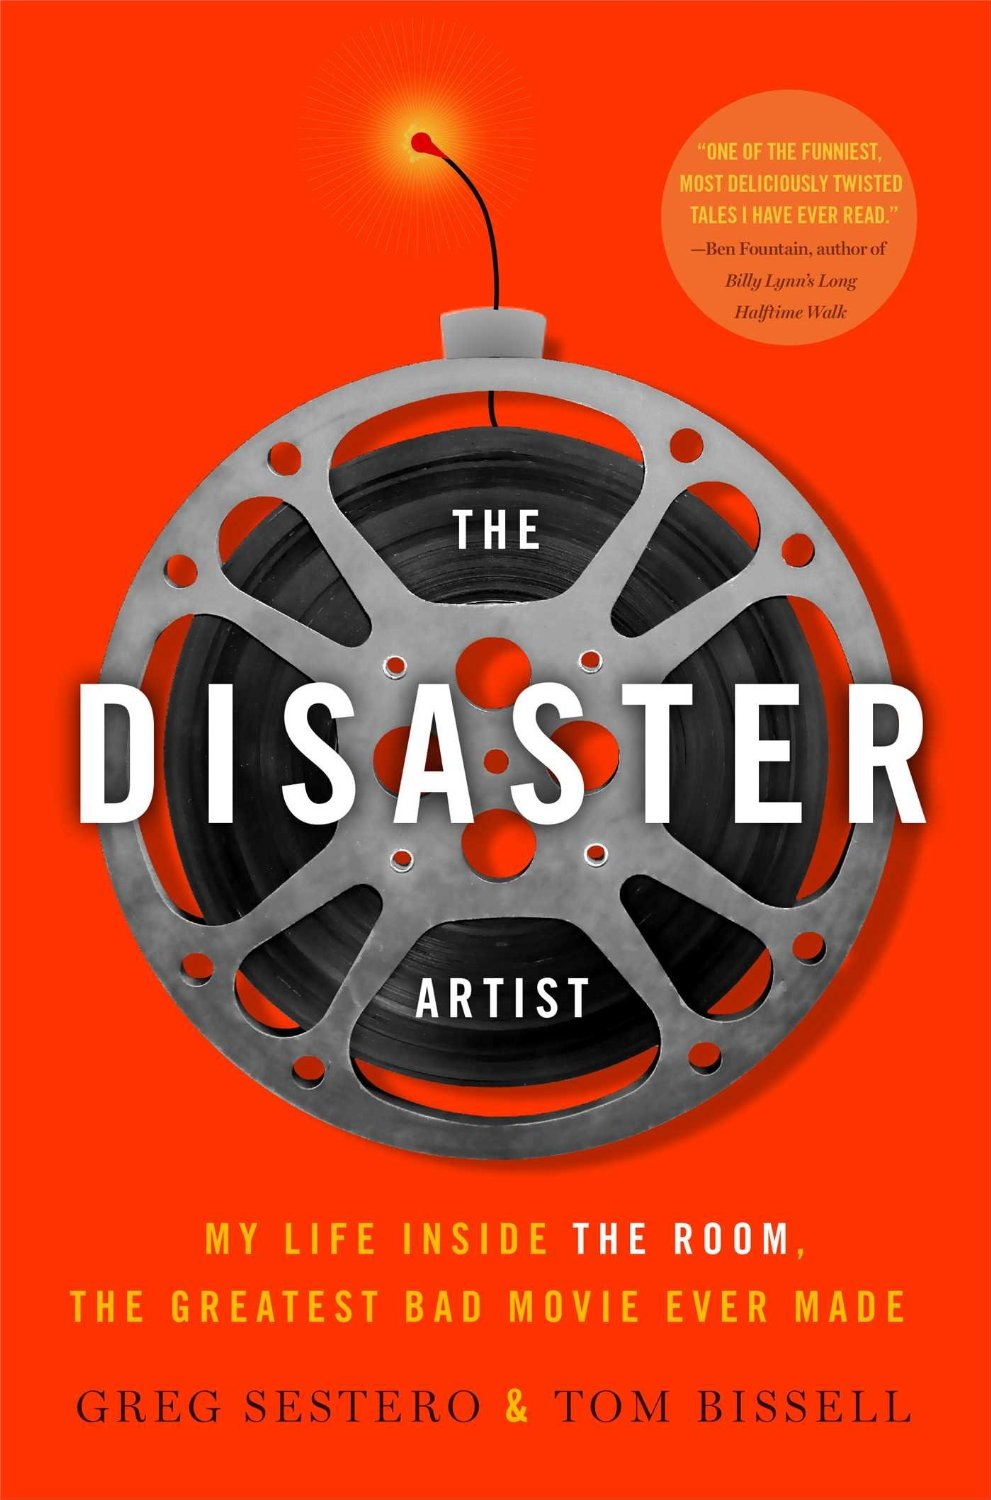 The Disaster Artist book